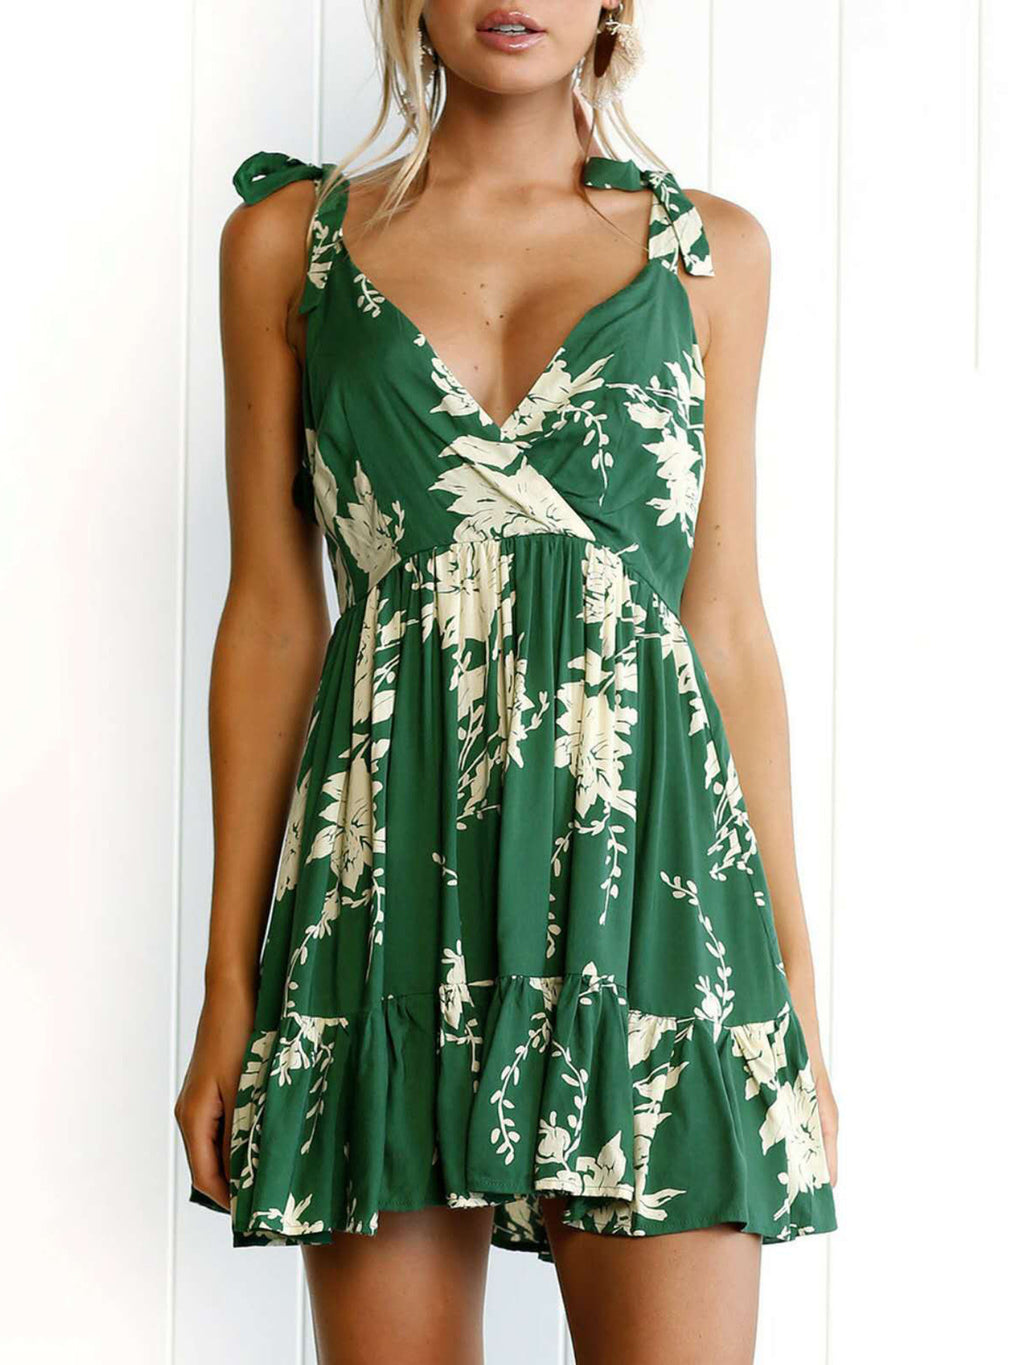 Green Spaghetti Floral Cotton Vacation Dress